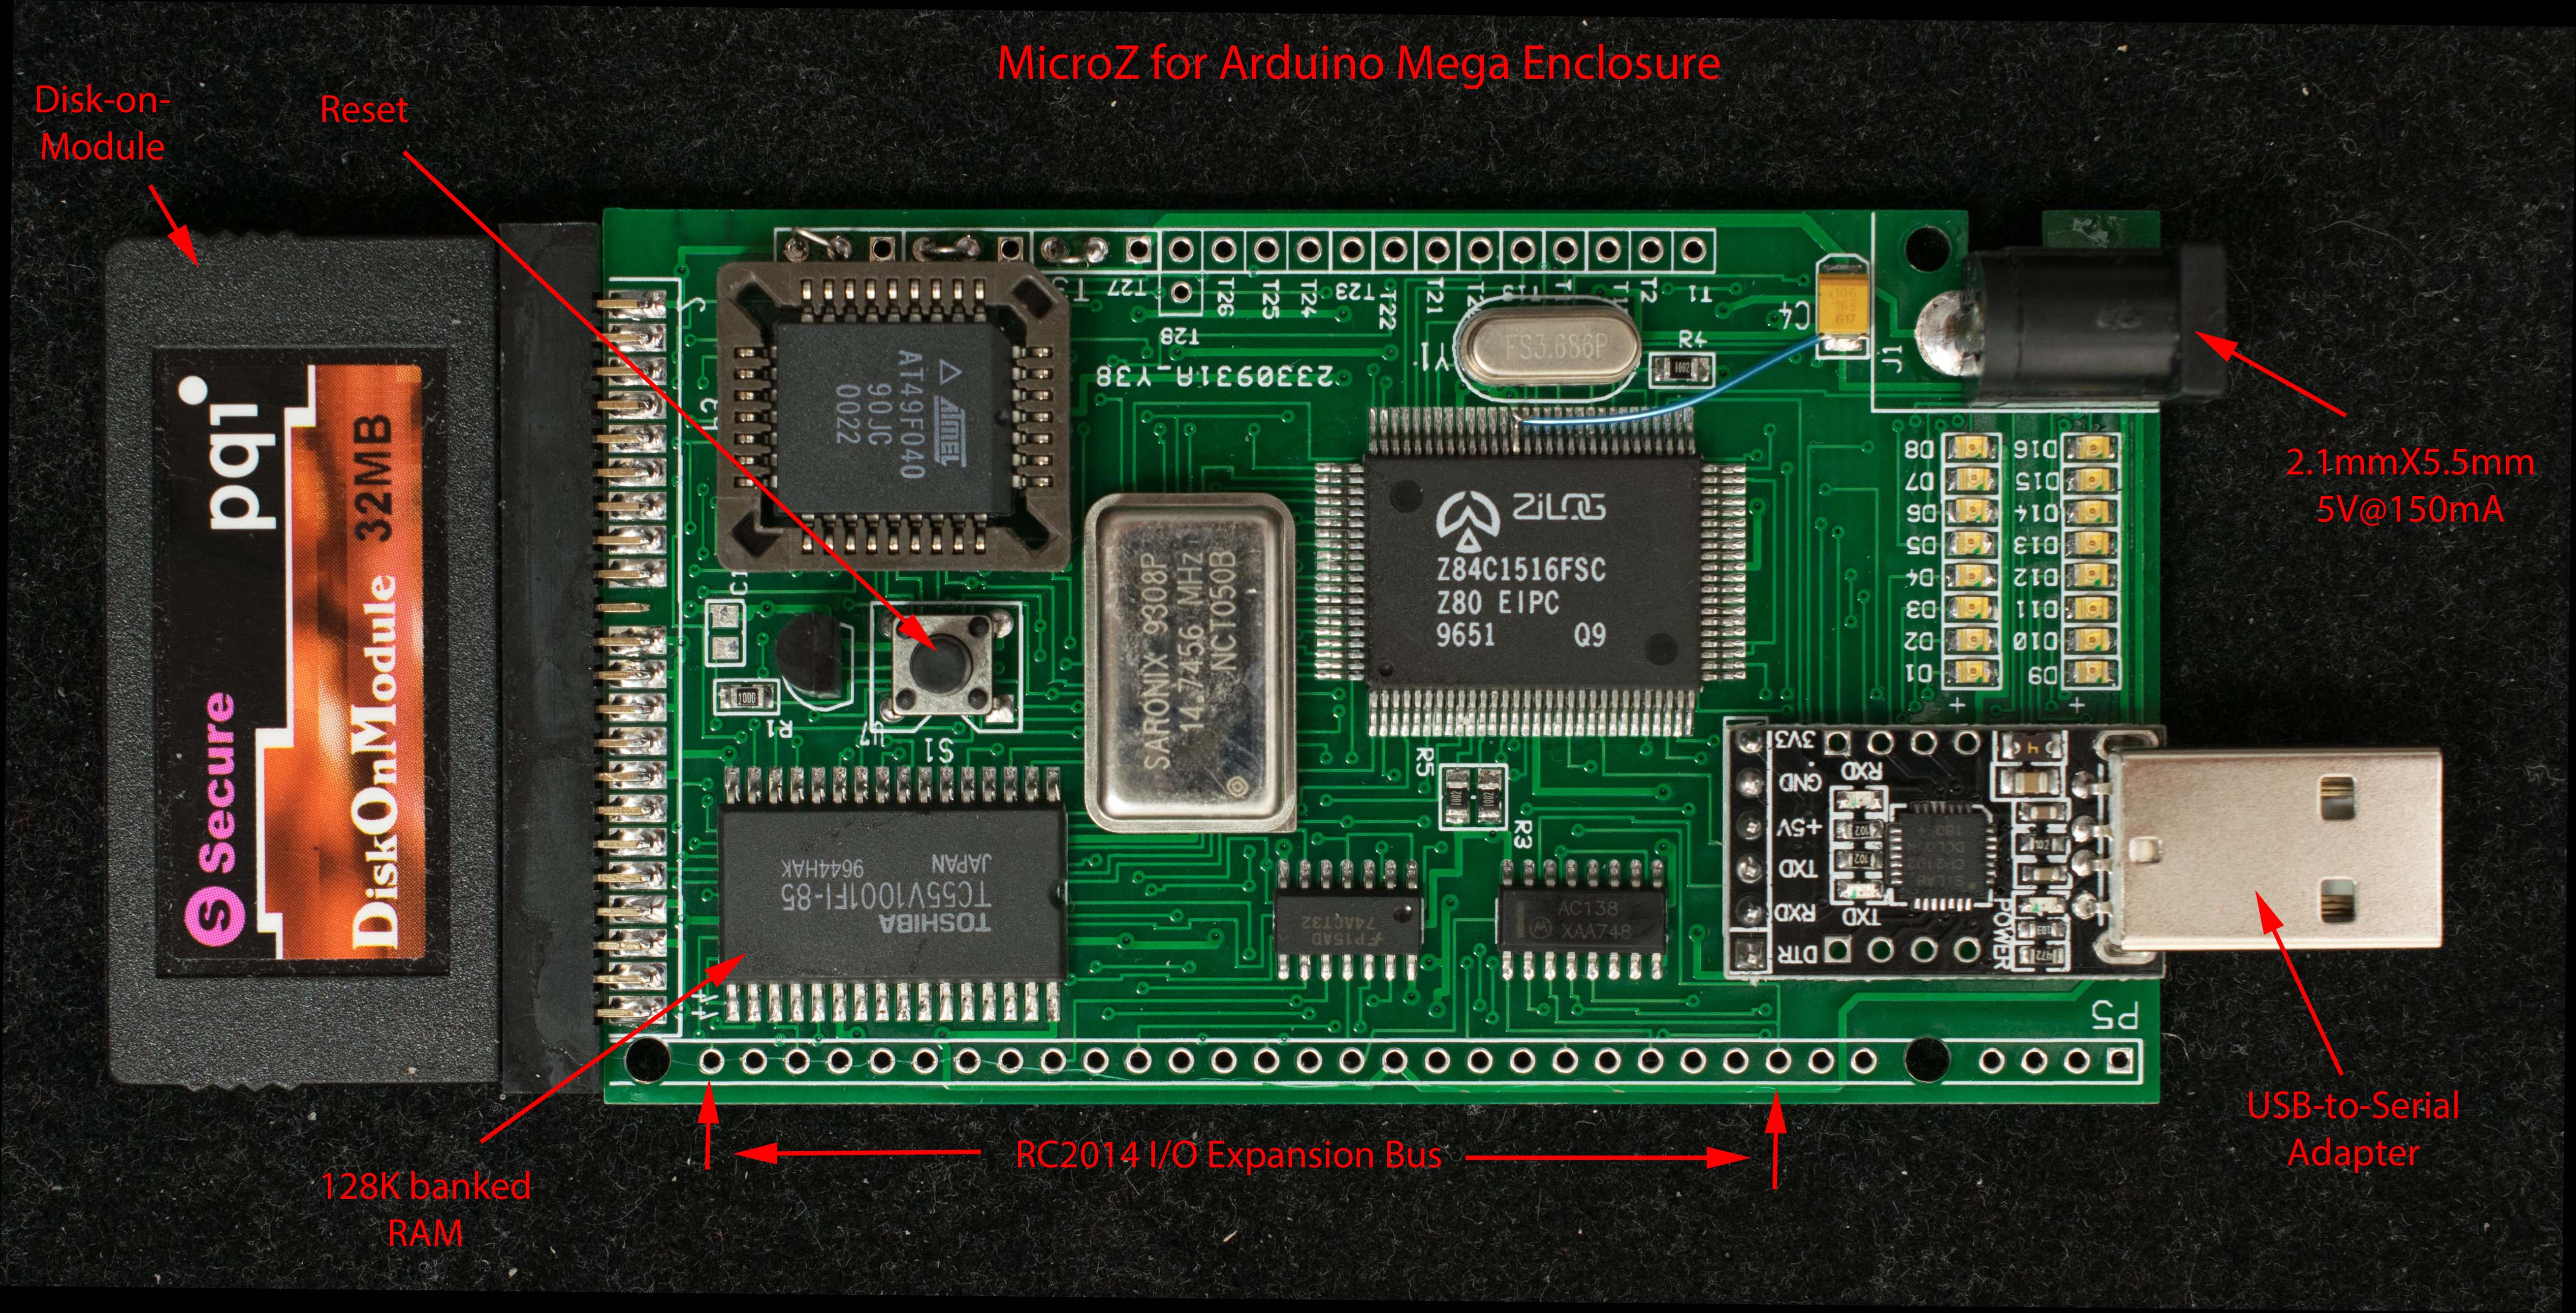 www.retrobrewcomputers.org_lib_plugins_ckgedit_fckeditor_userfiles_image_builderpages_plasmo_microz_microz_annotated.jpg